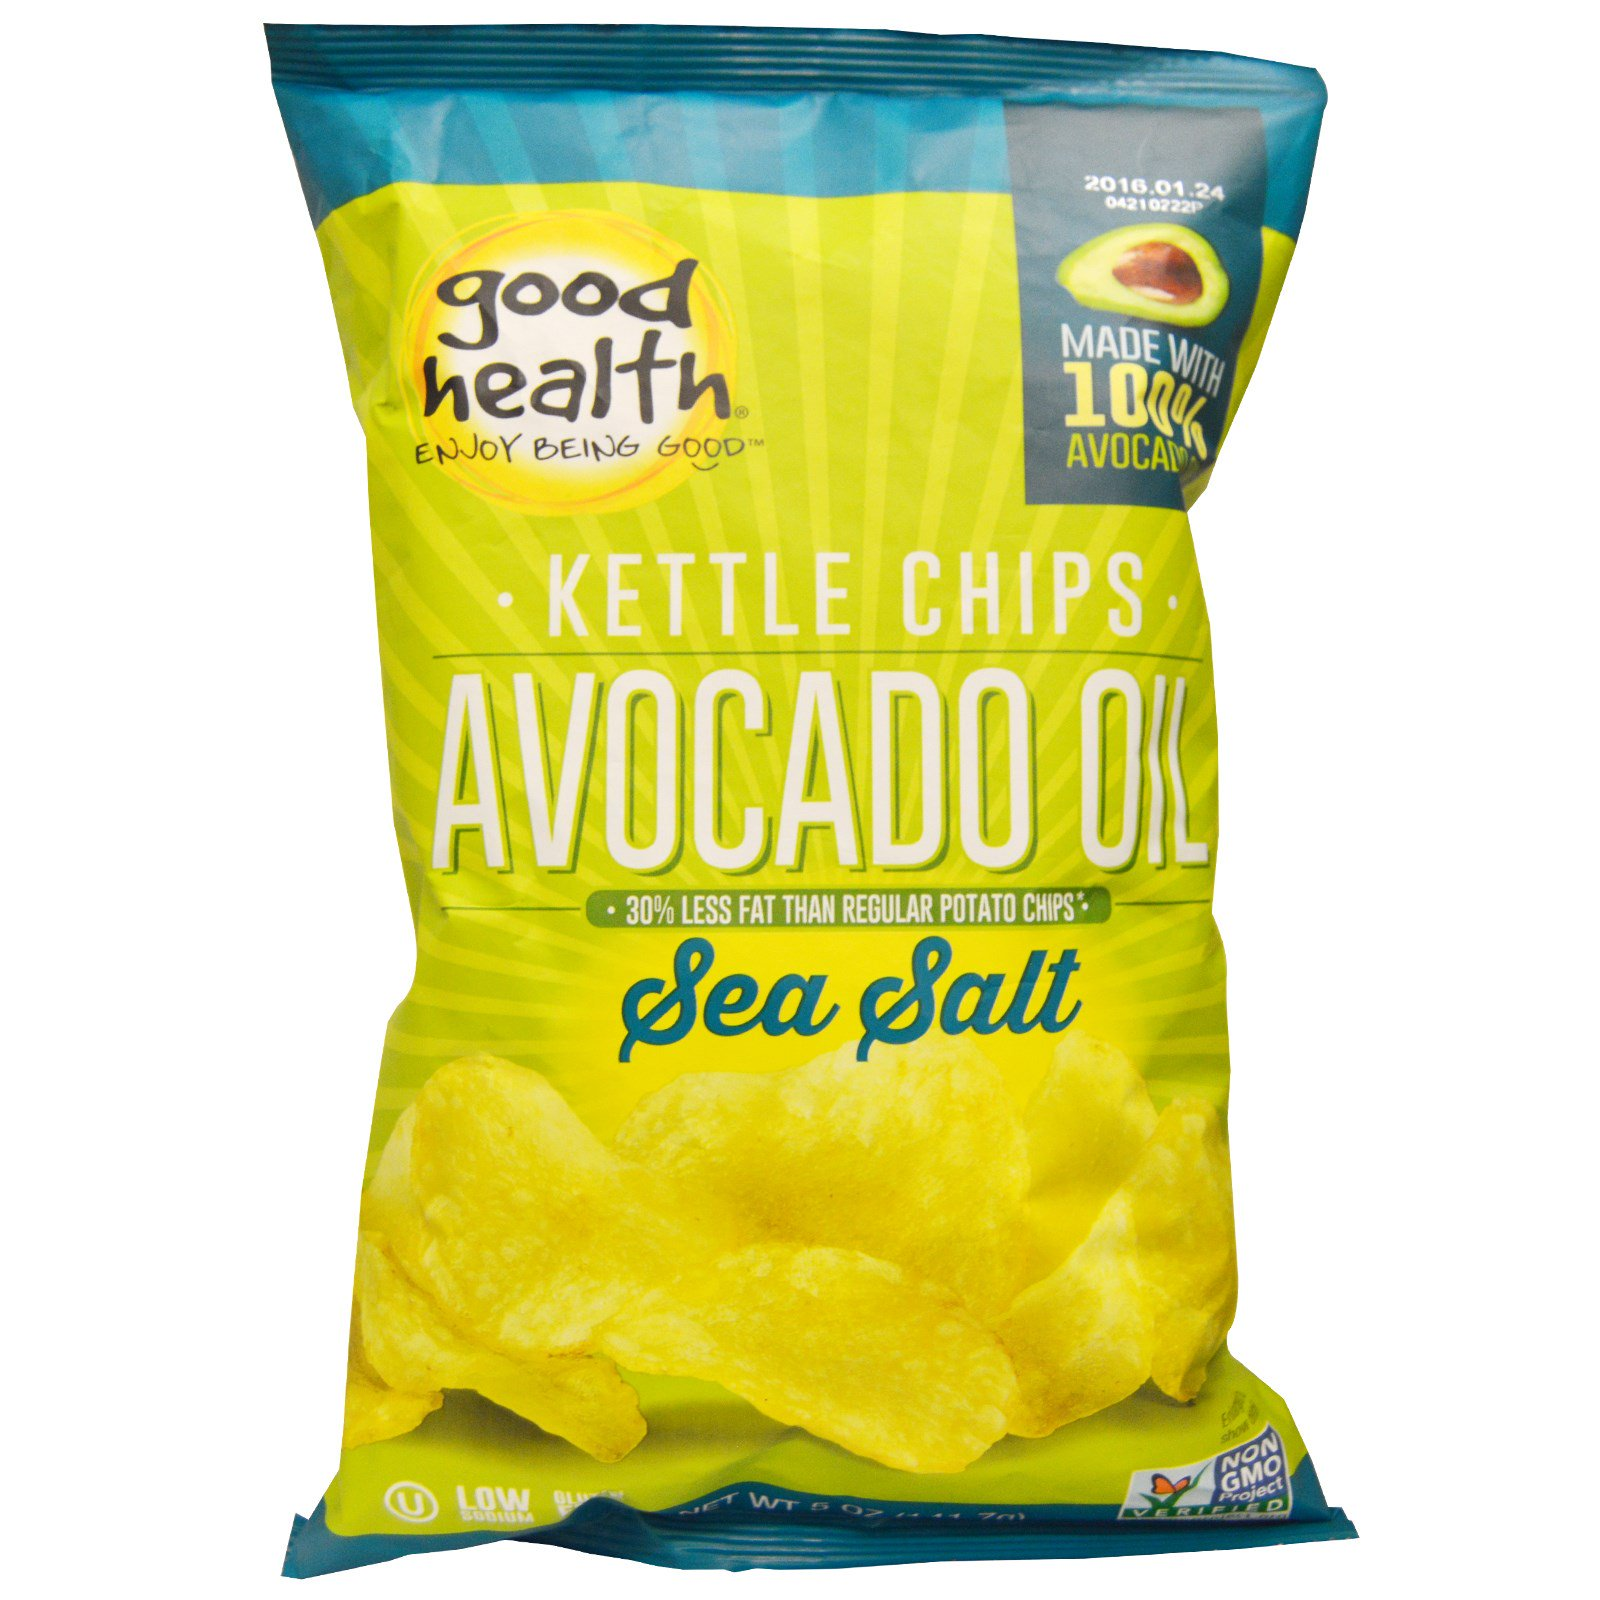 Good Health Natural Foods, Kettle Chips, Avocado Oil, Sea Salt, 5 oz (pack of 2) by